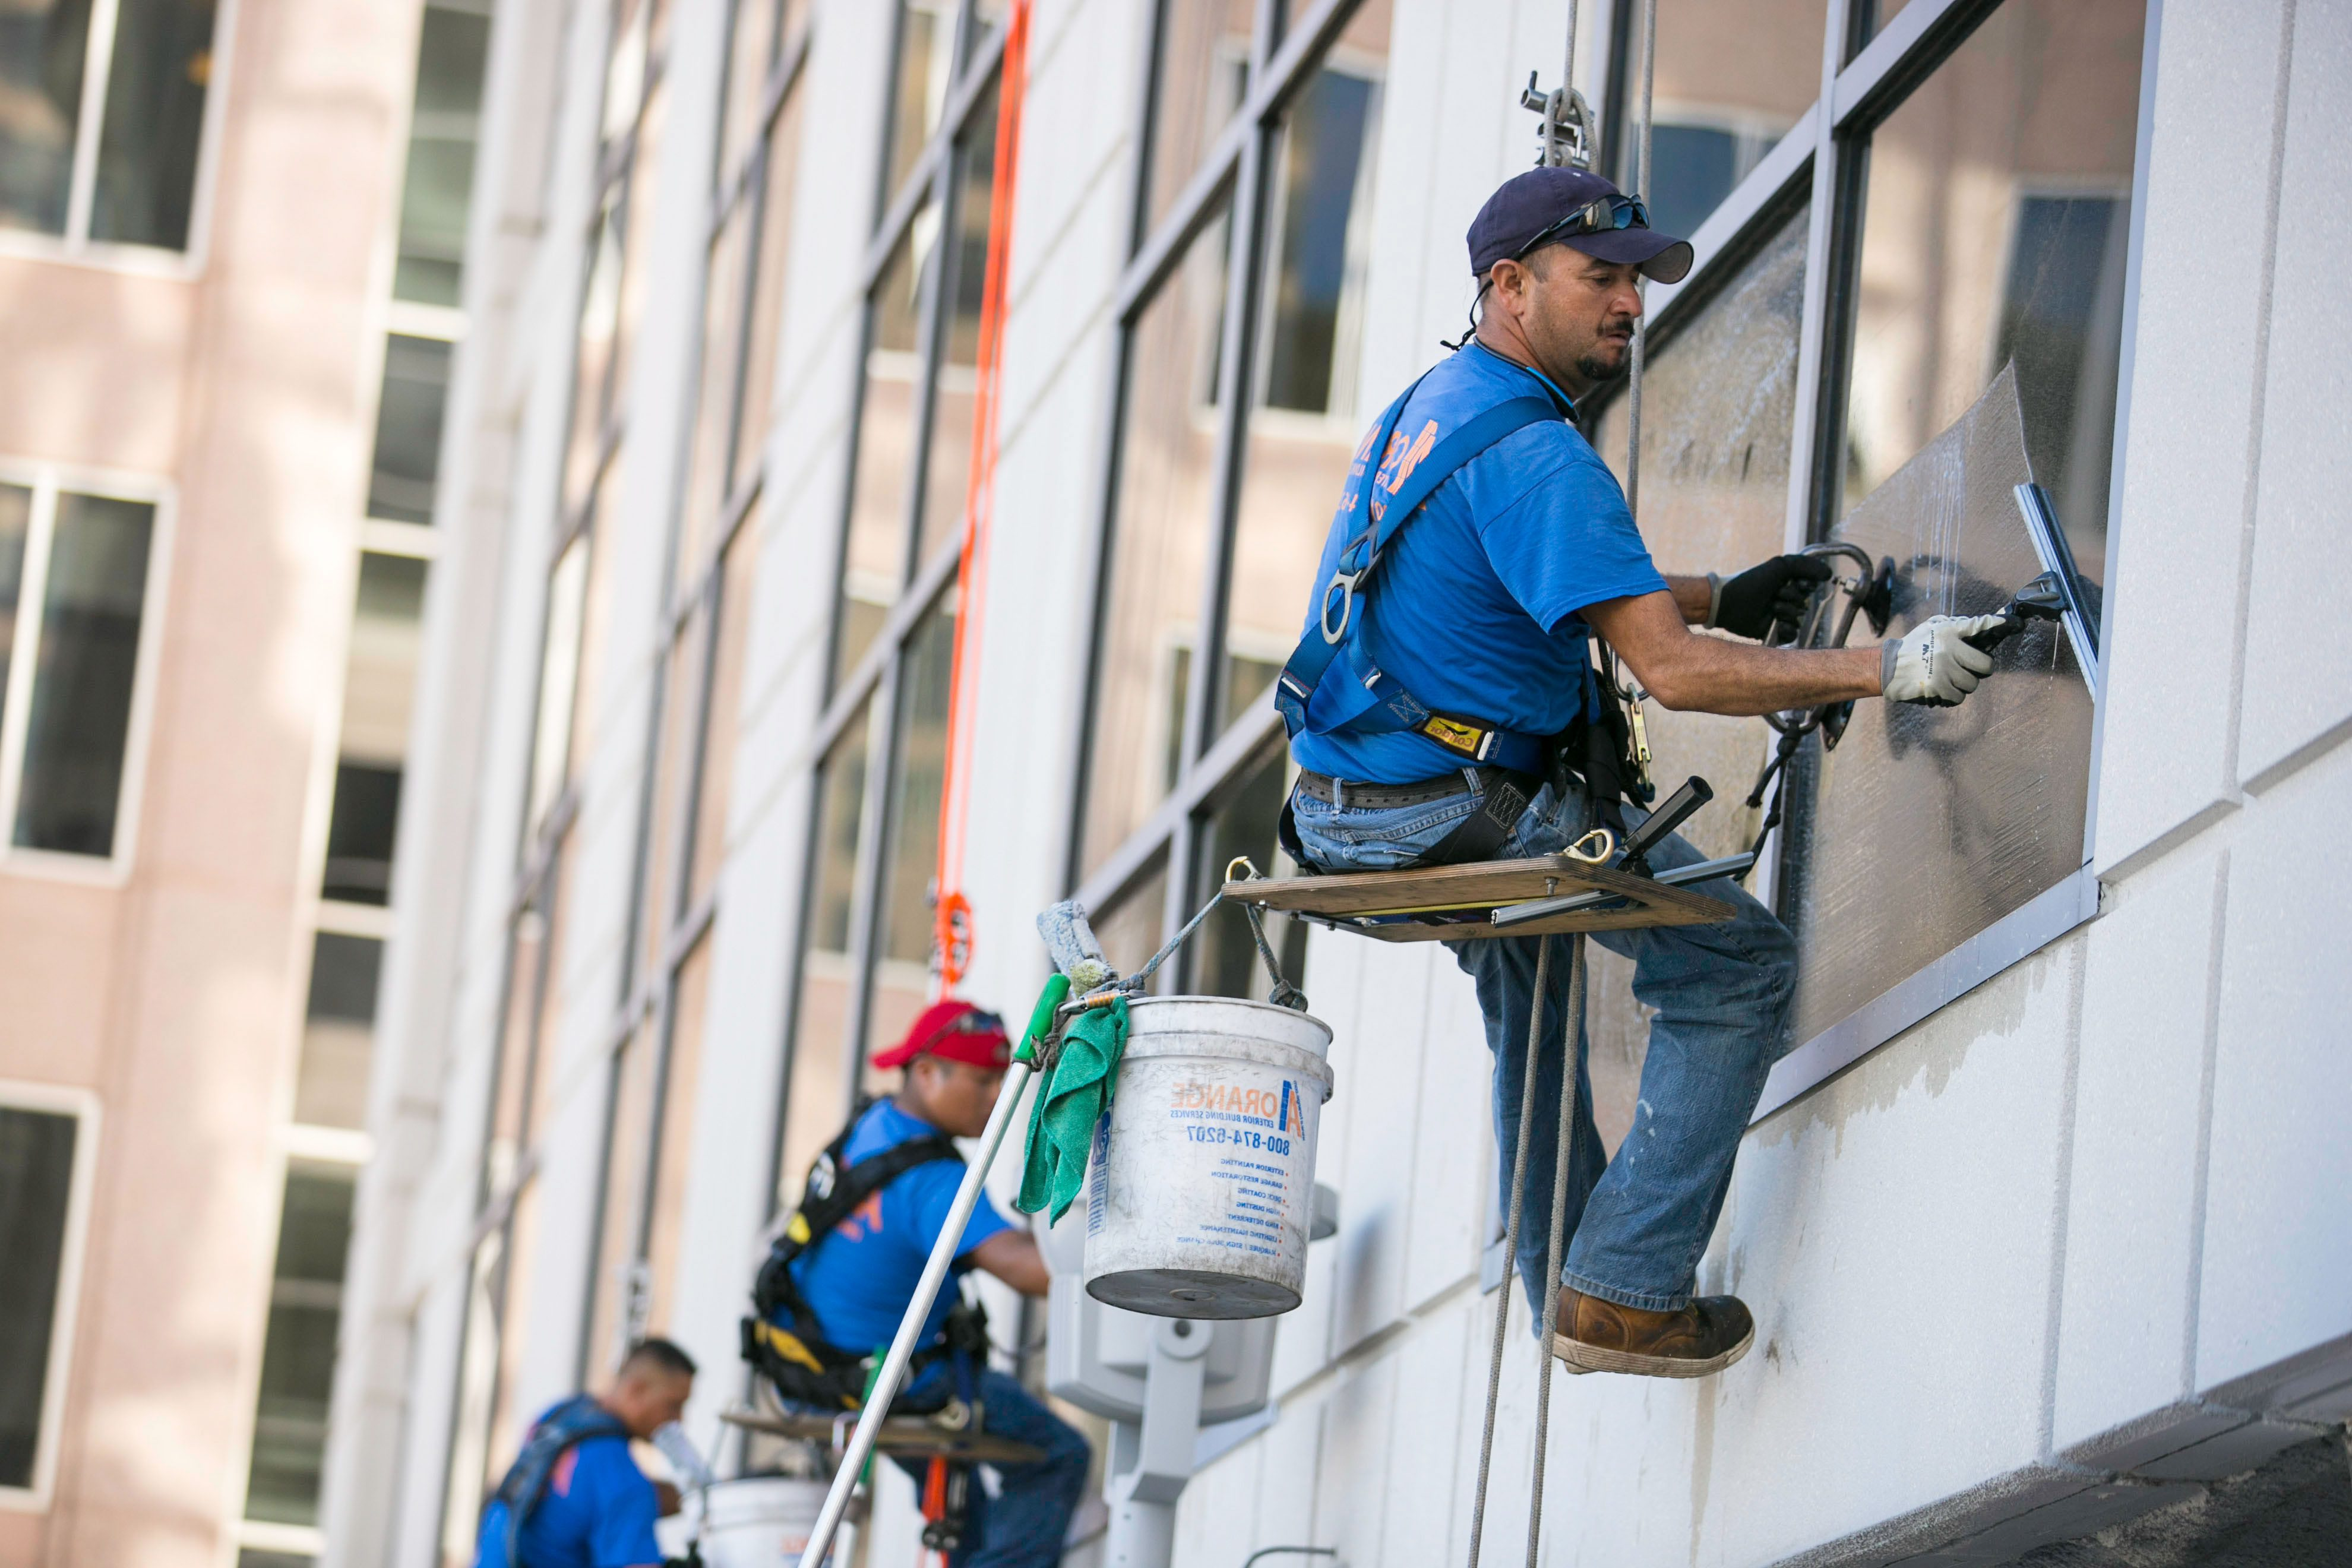 A1 orange building services for central florida commercial industrial residential properties for Commercial exterior cleaning services